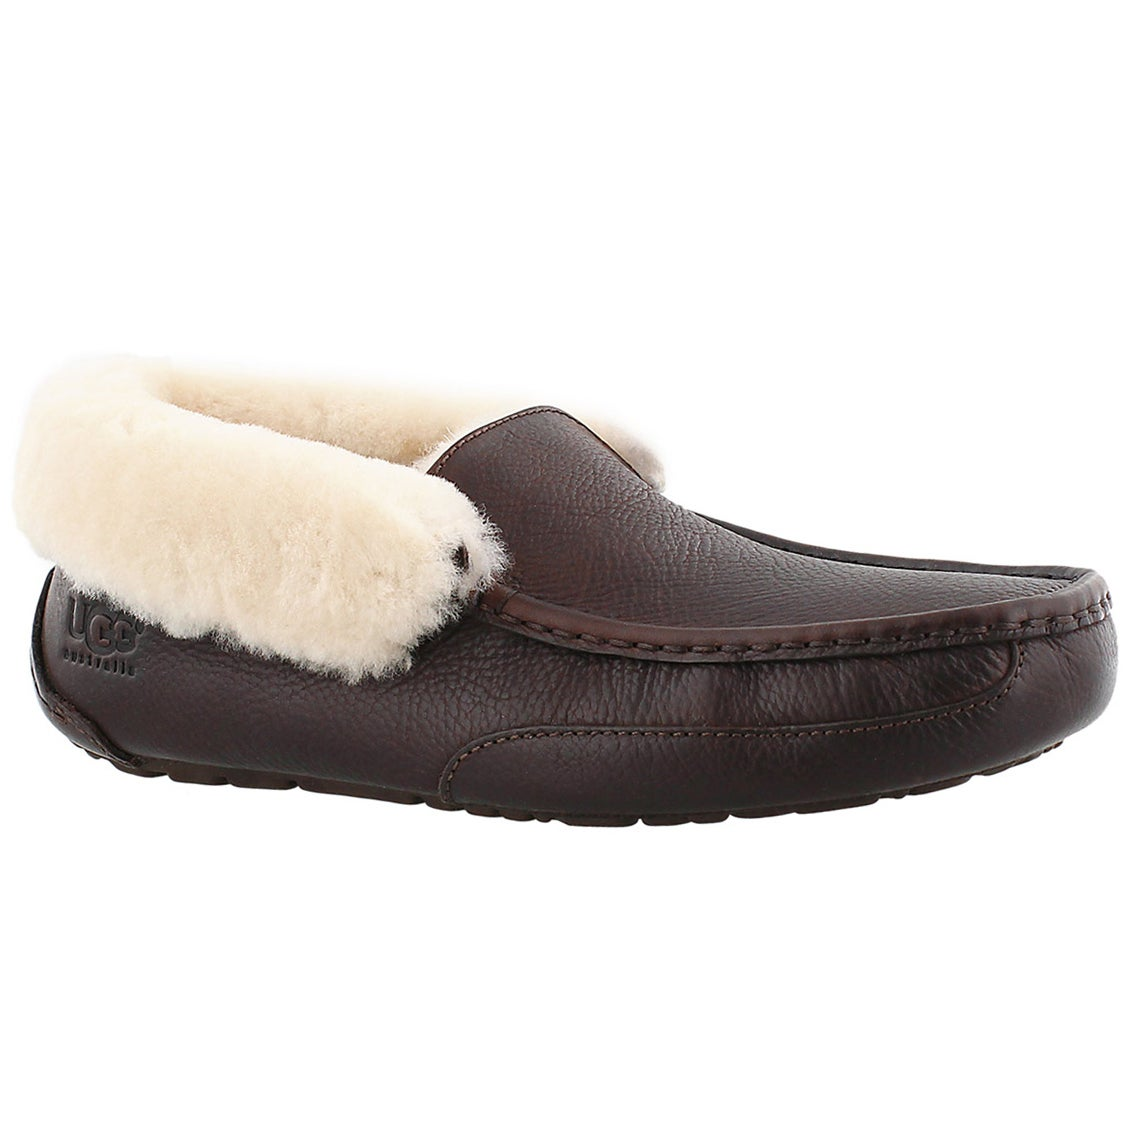 Men's GRANTT china tea leather moccasins